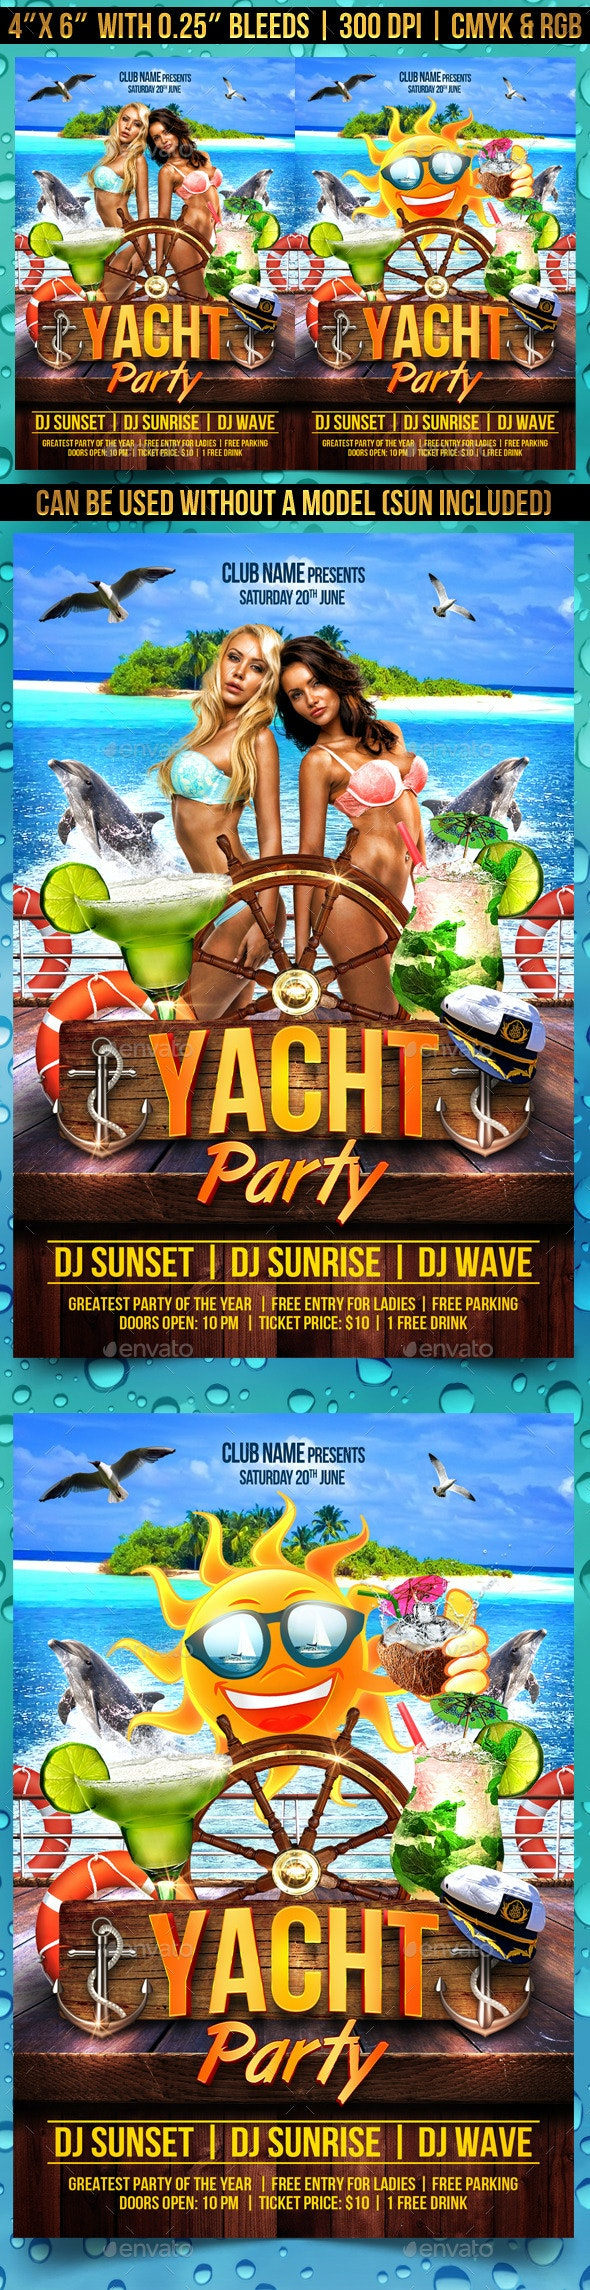 Yacht Party Flyer Template - Clubs & Parties Events